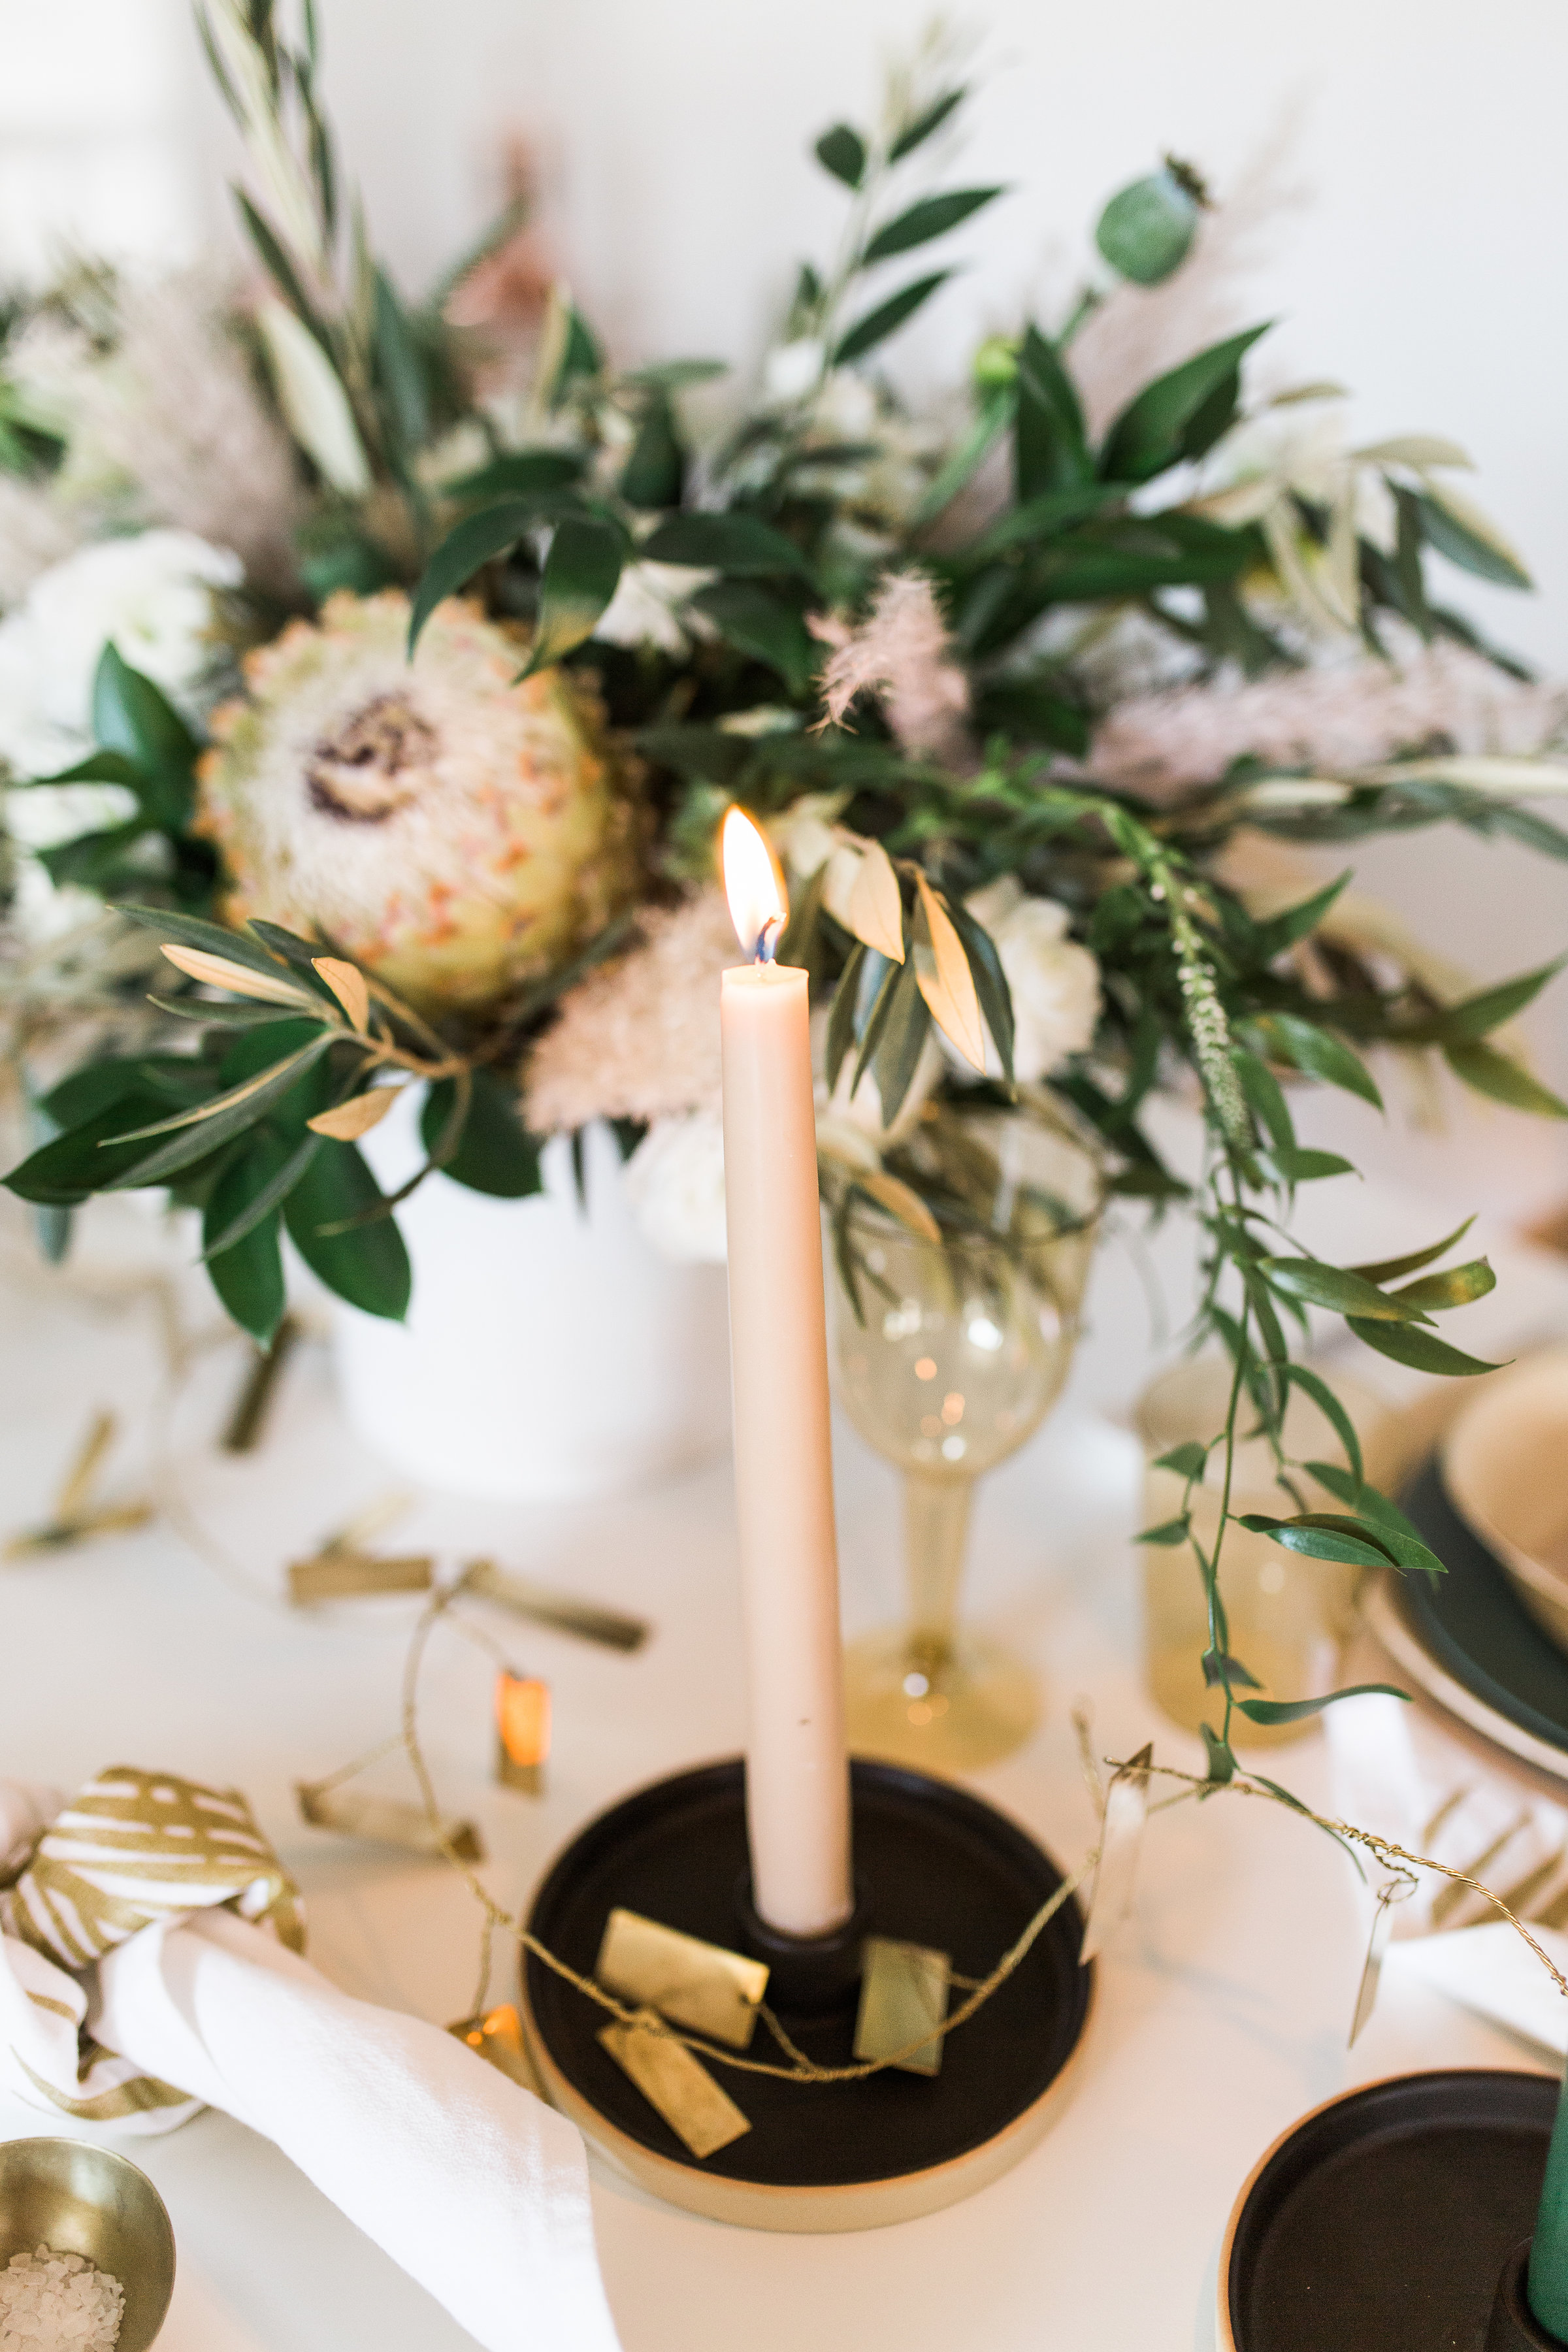 Winter indoor party ideas for brunch from livingforaged.com